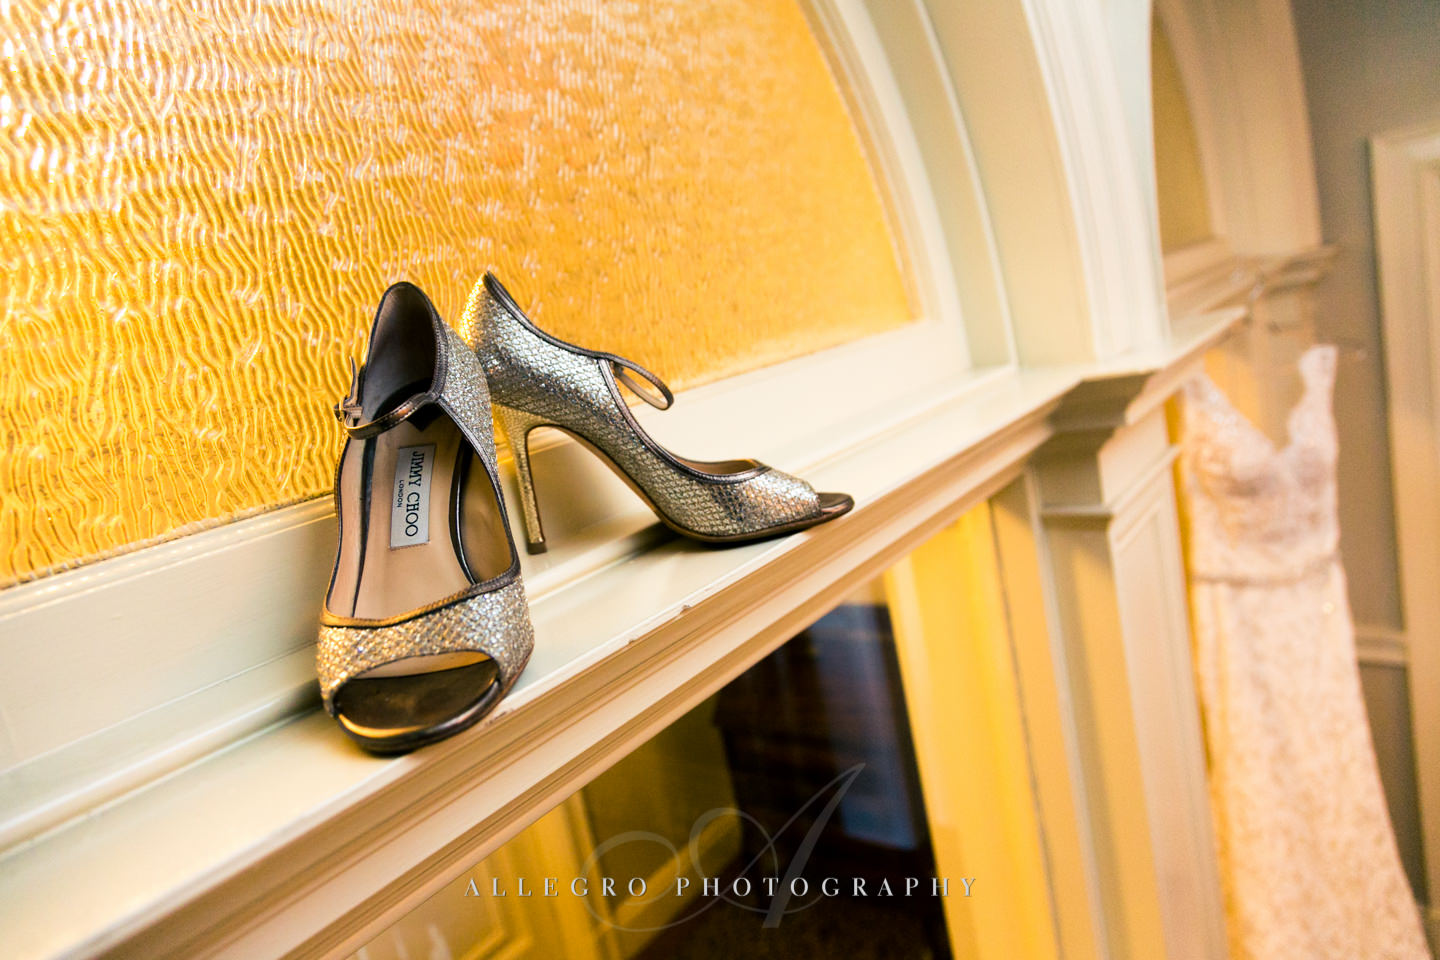 jimmy choo bridal shoes at oceancliff -photo by Allegro Photography